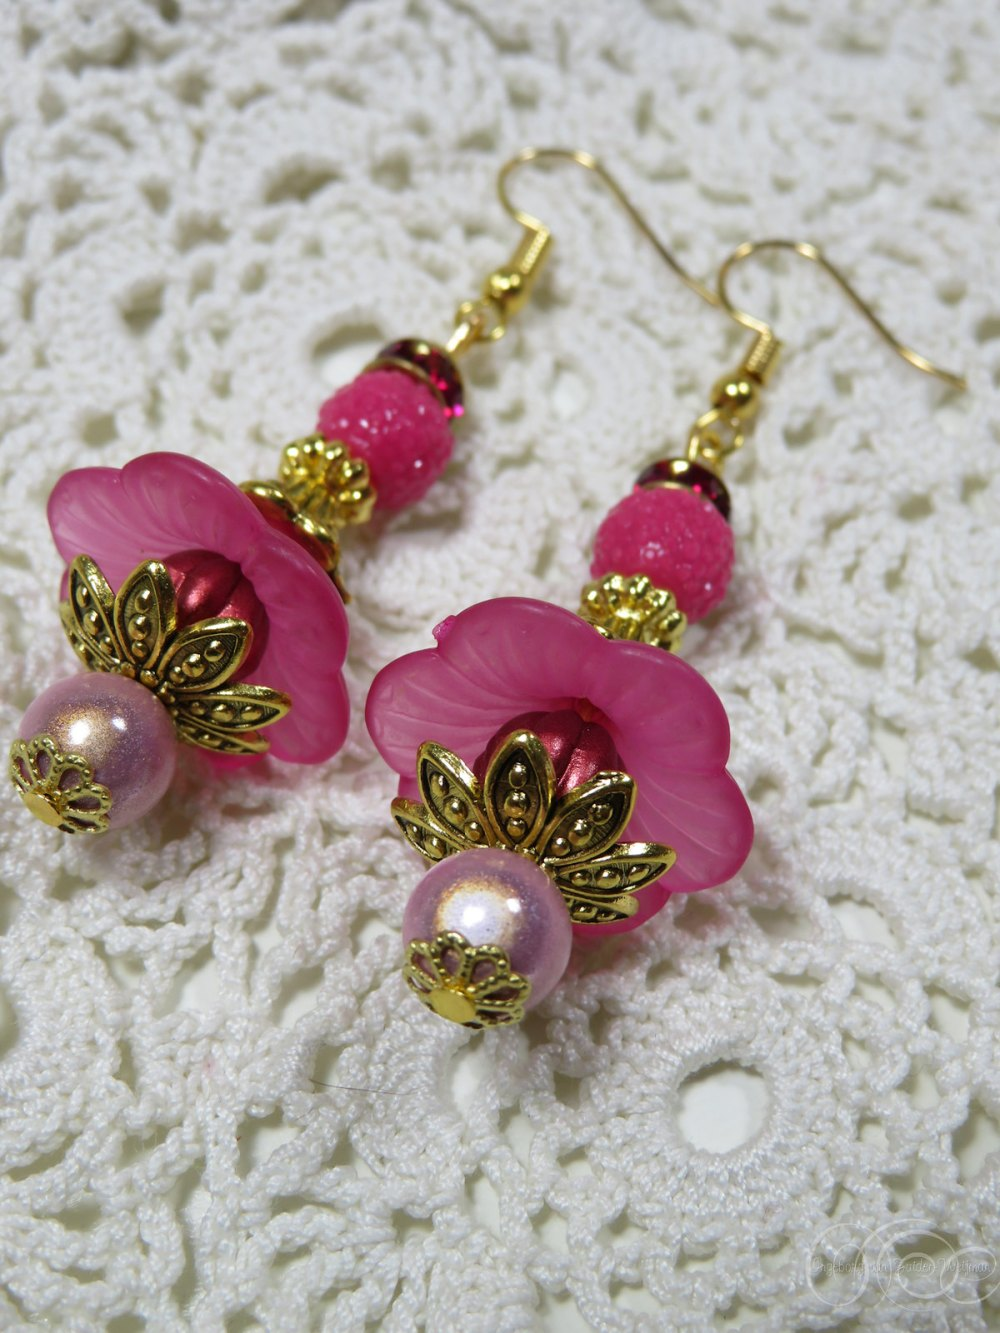 Handmade flower earrings by Ingeborg van Zuiden